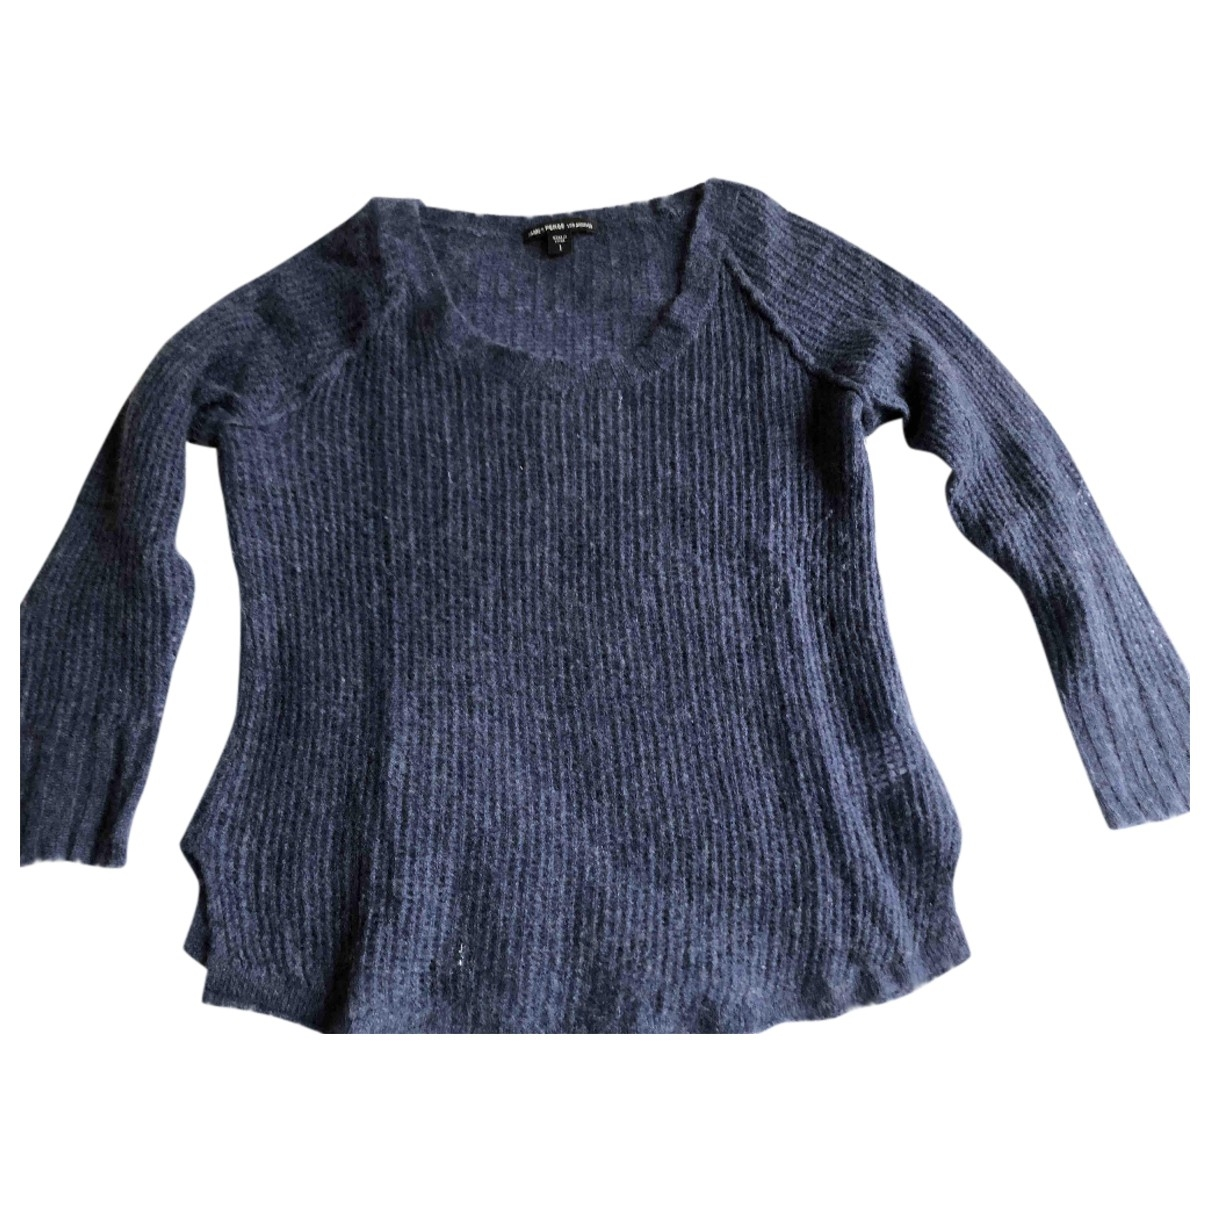 James Perse \N Blue Cashmere Knitwear for Women 1 US